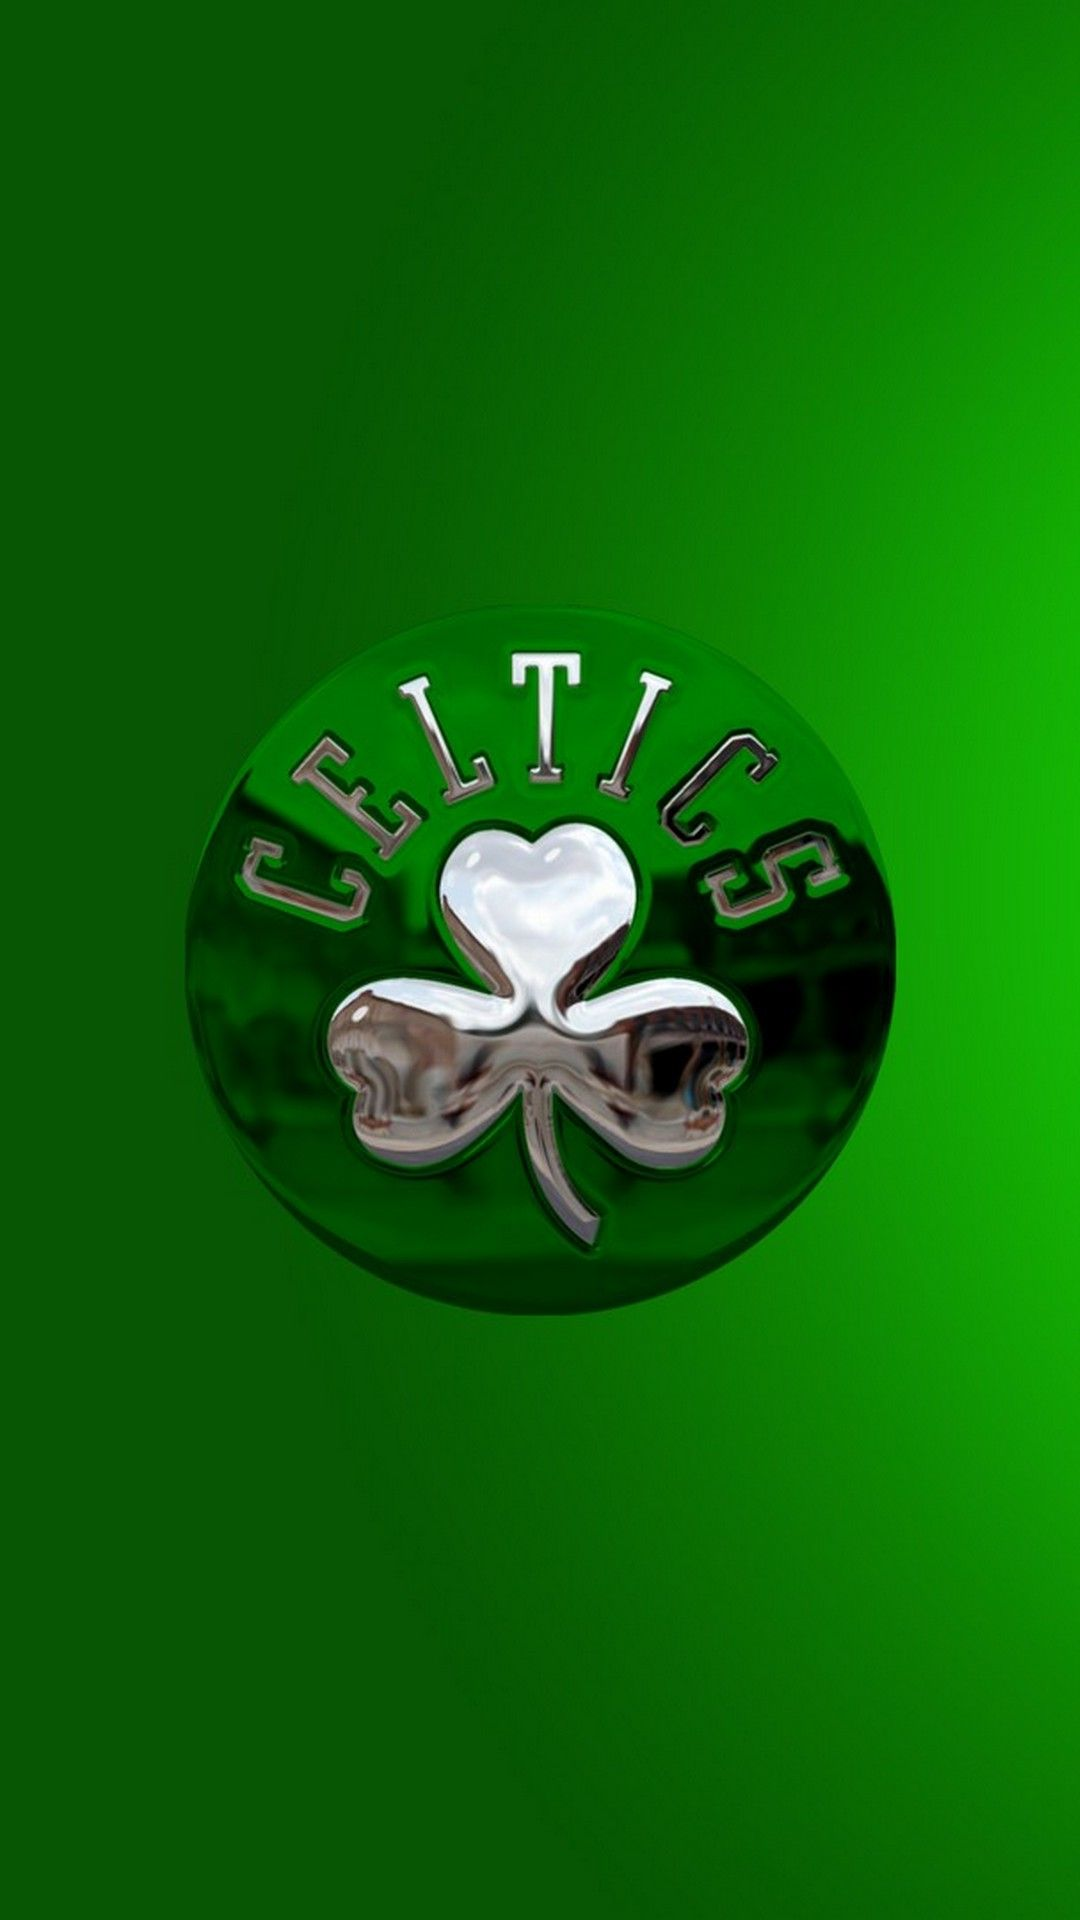 Boston Celtics Wallpaper For Android Best Mobile Wallpaper Boston Celtics Wallpaper Boston Celtics Nba Wallpapers